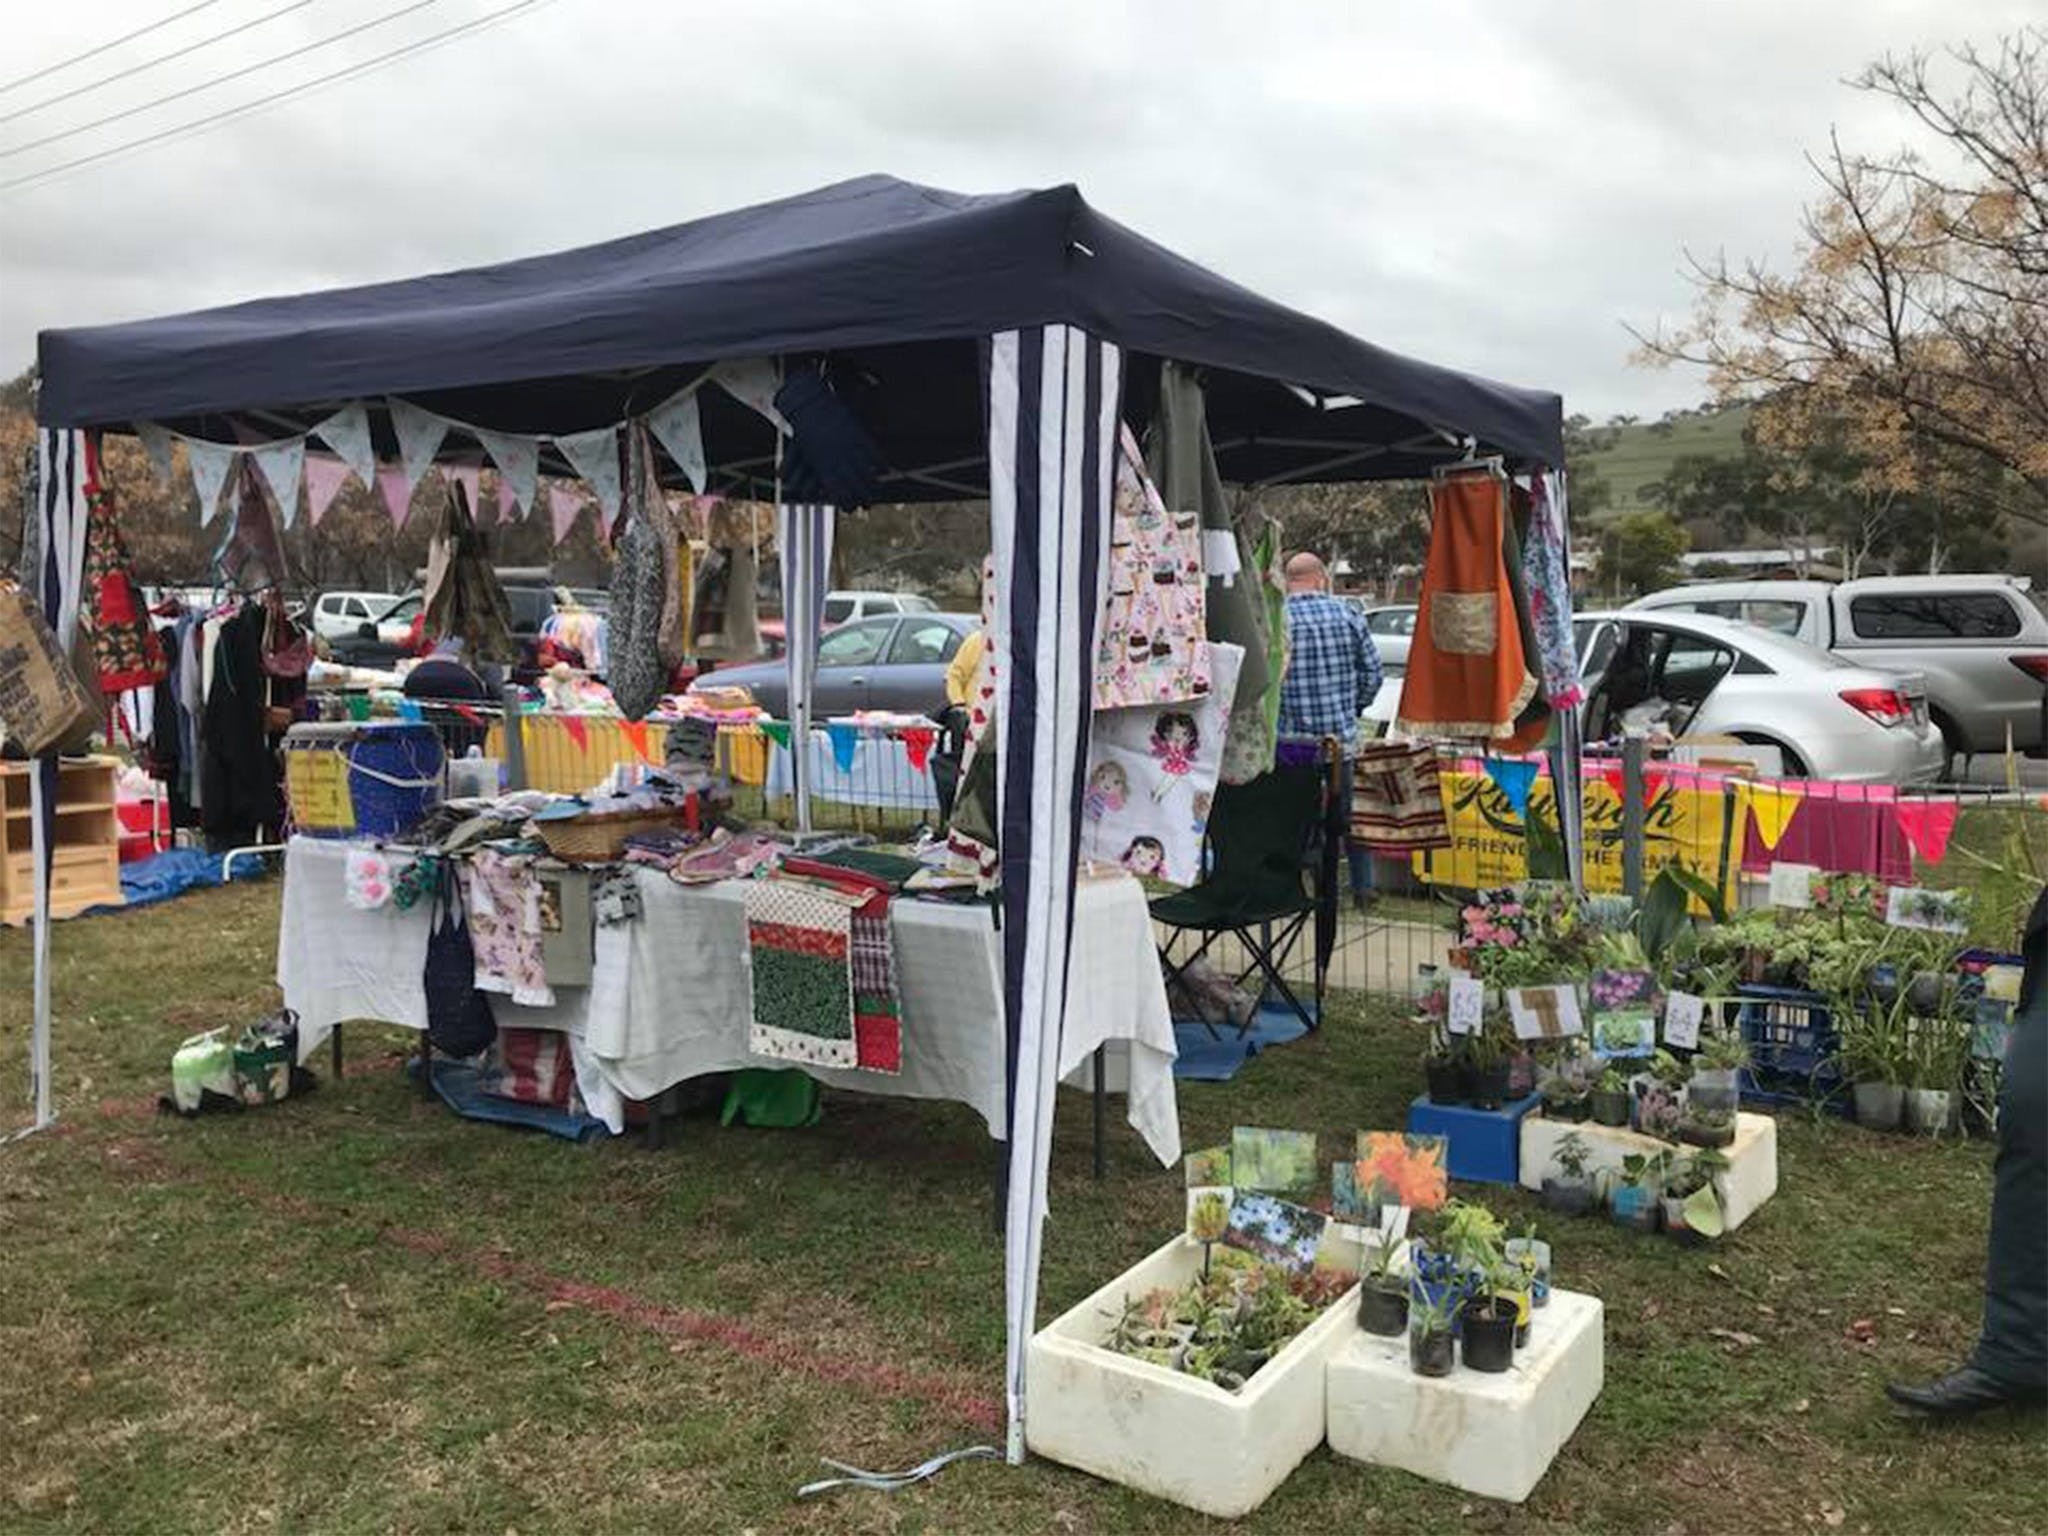 Perthville Village Fair - Accommodation Adelaide